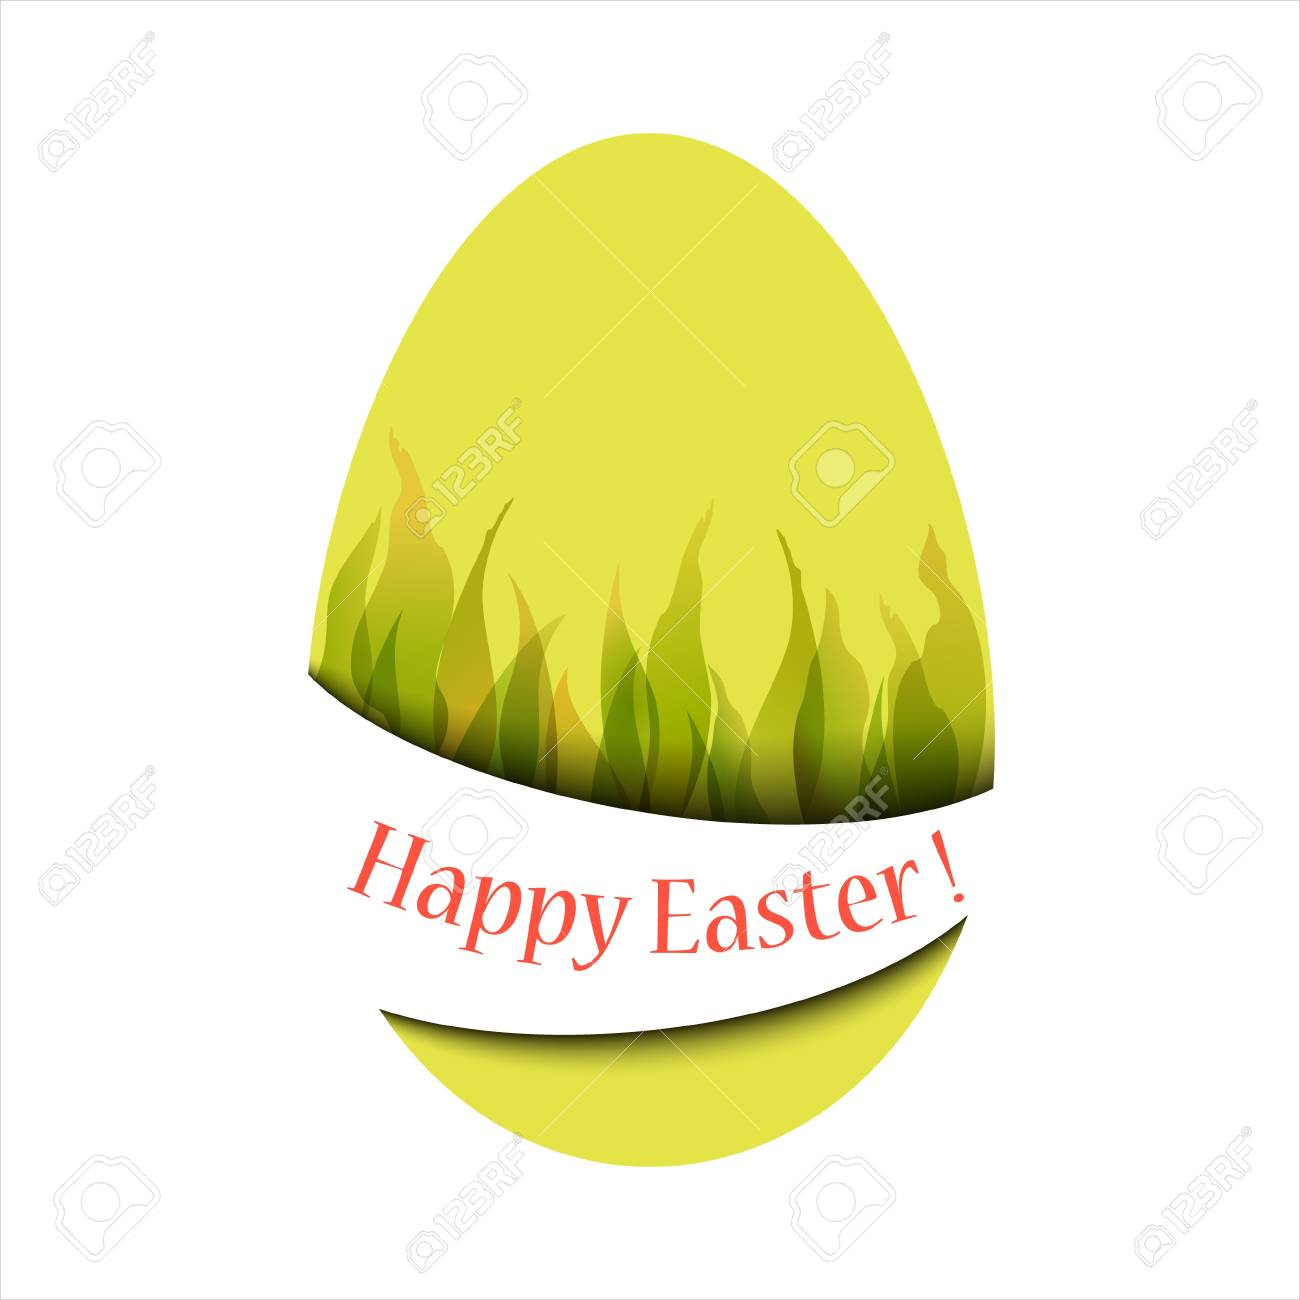 Easter card with the words Happy Easter Stock Vector - 17781150